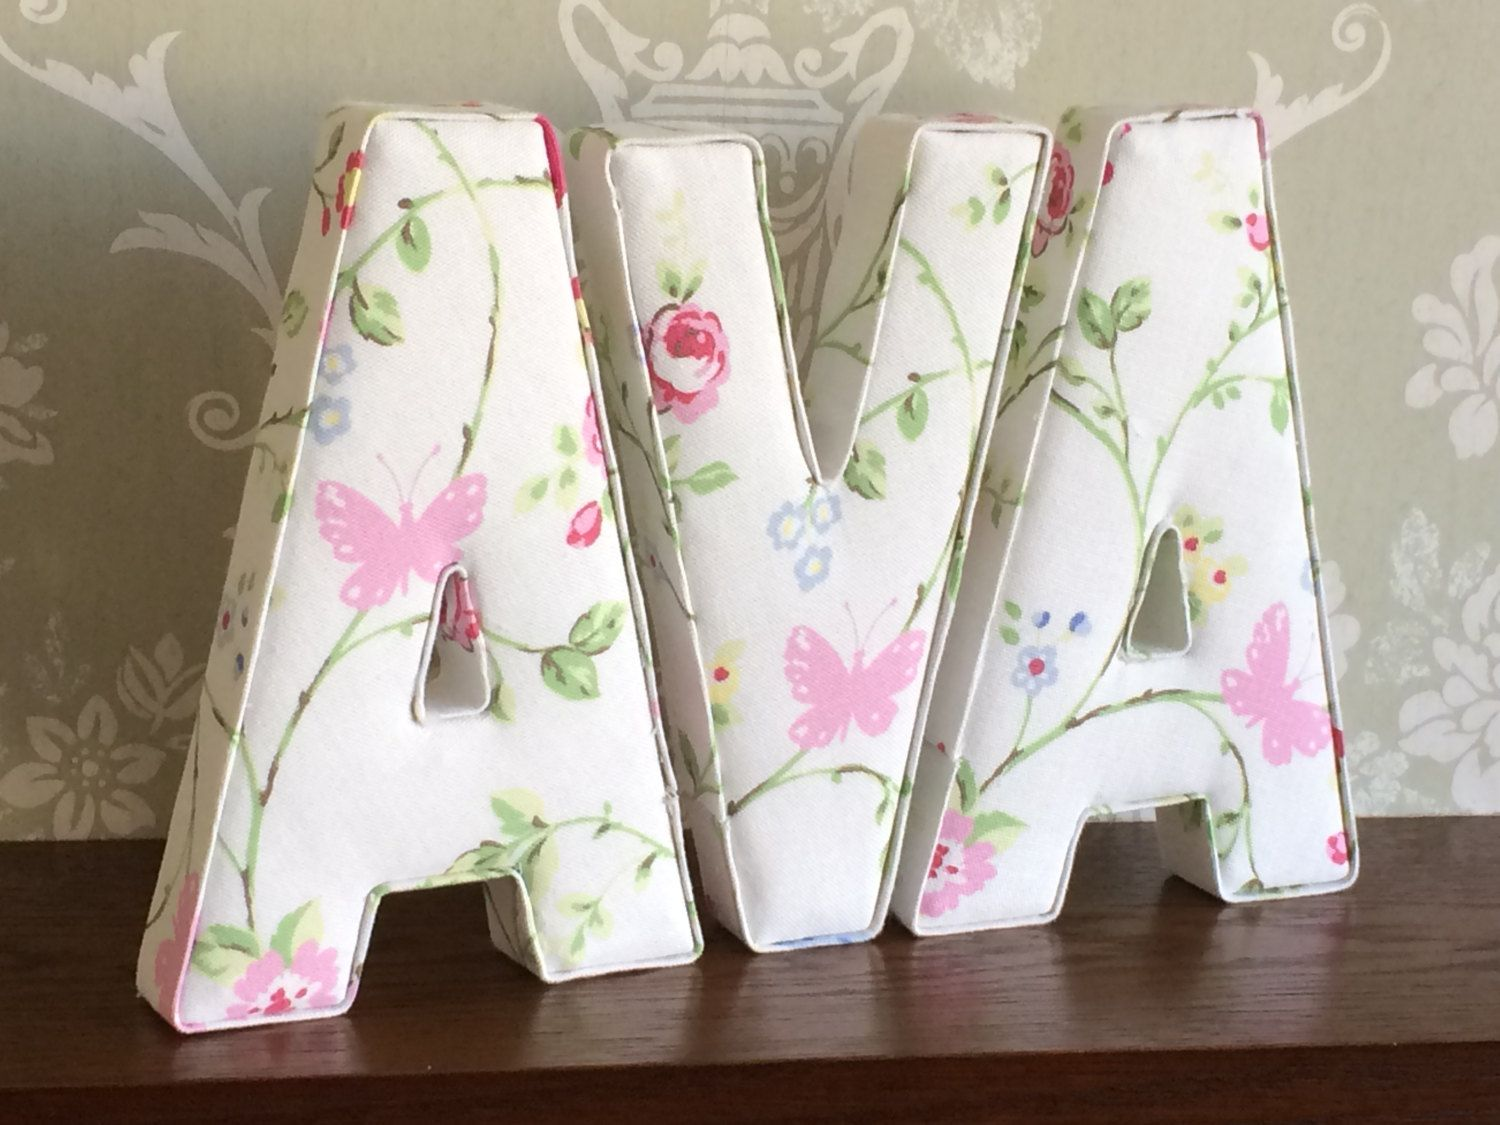 Decorative S Fabric Letters Free